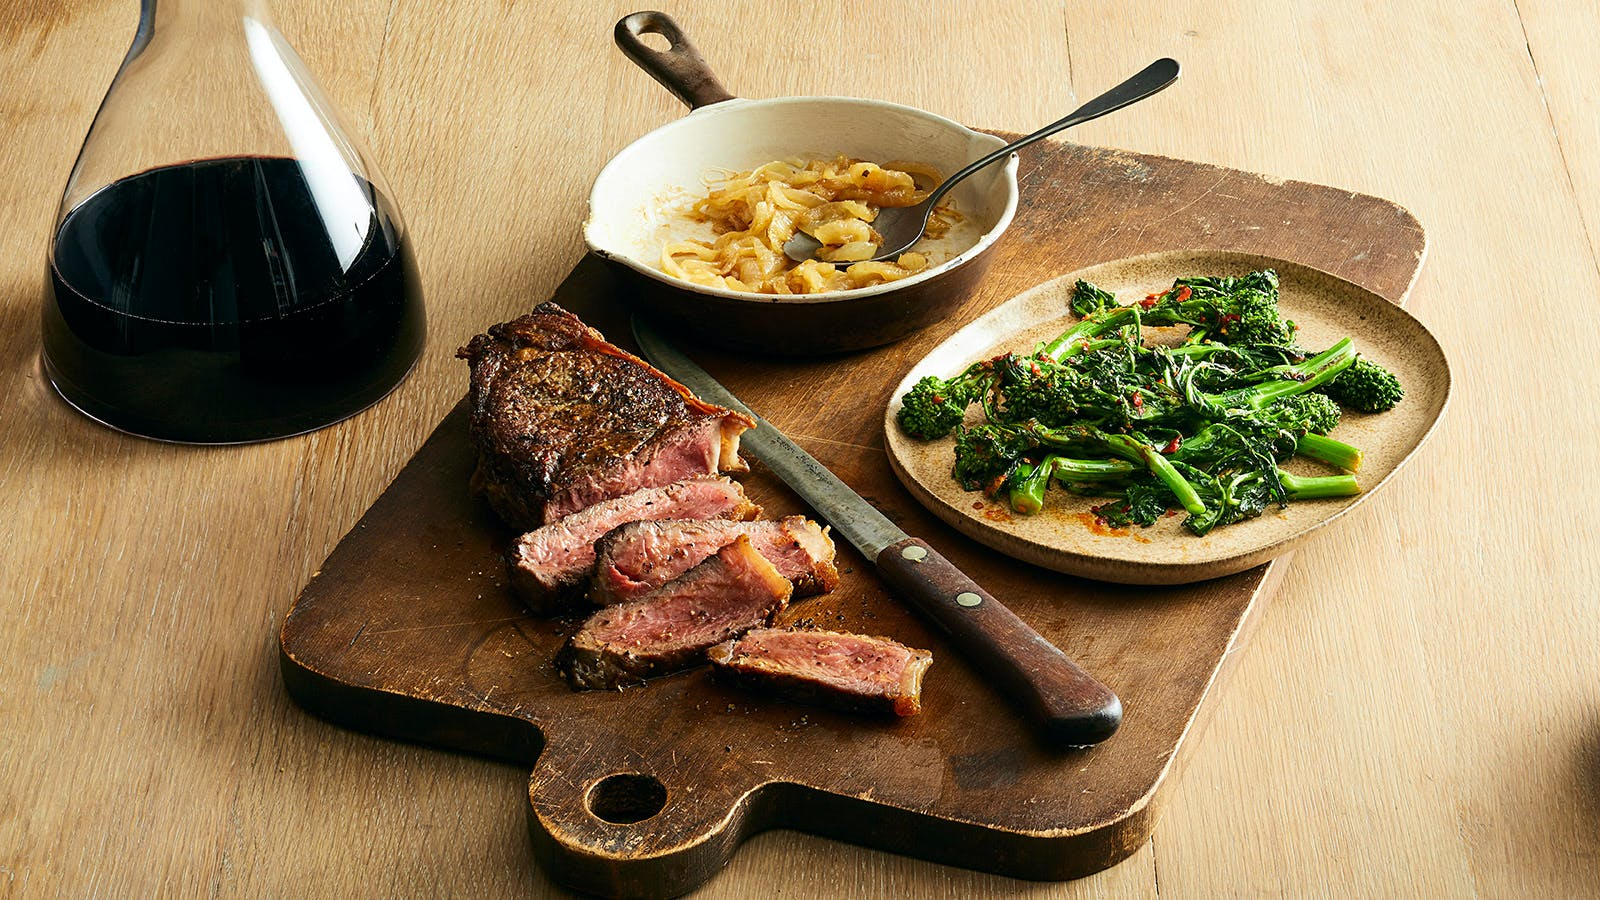 New York Strip Steak with Buttered Onions & Chile Skillet Broccoli Rabe